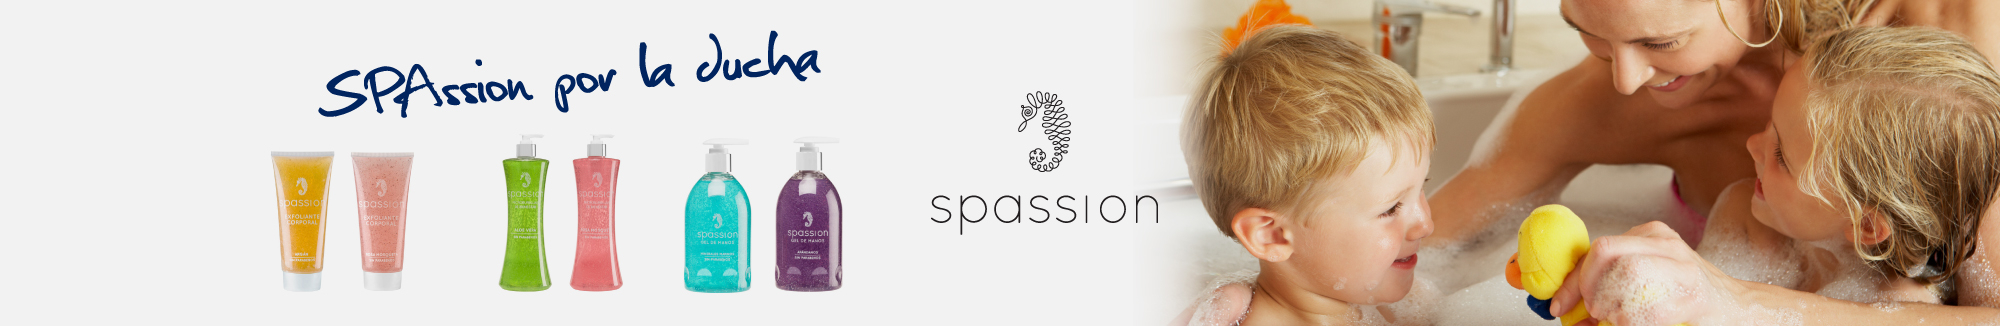 spassion-new_banner